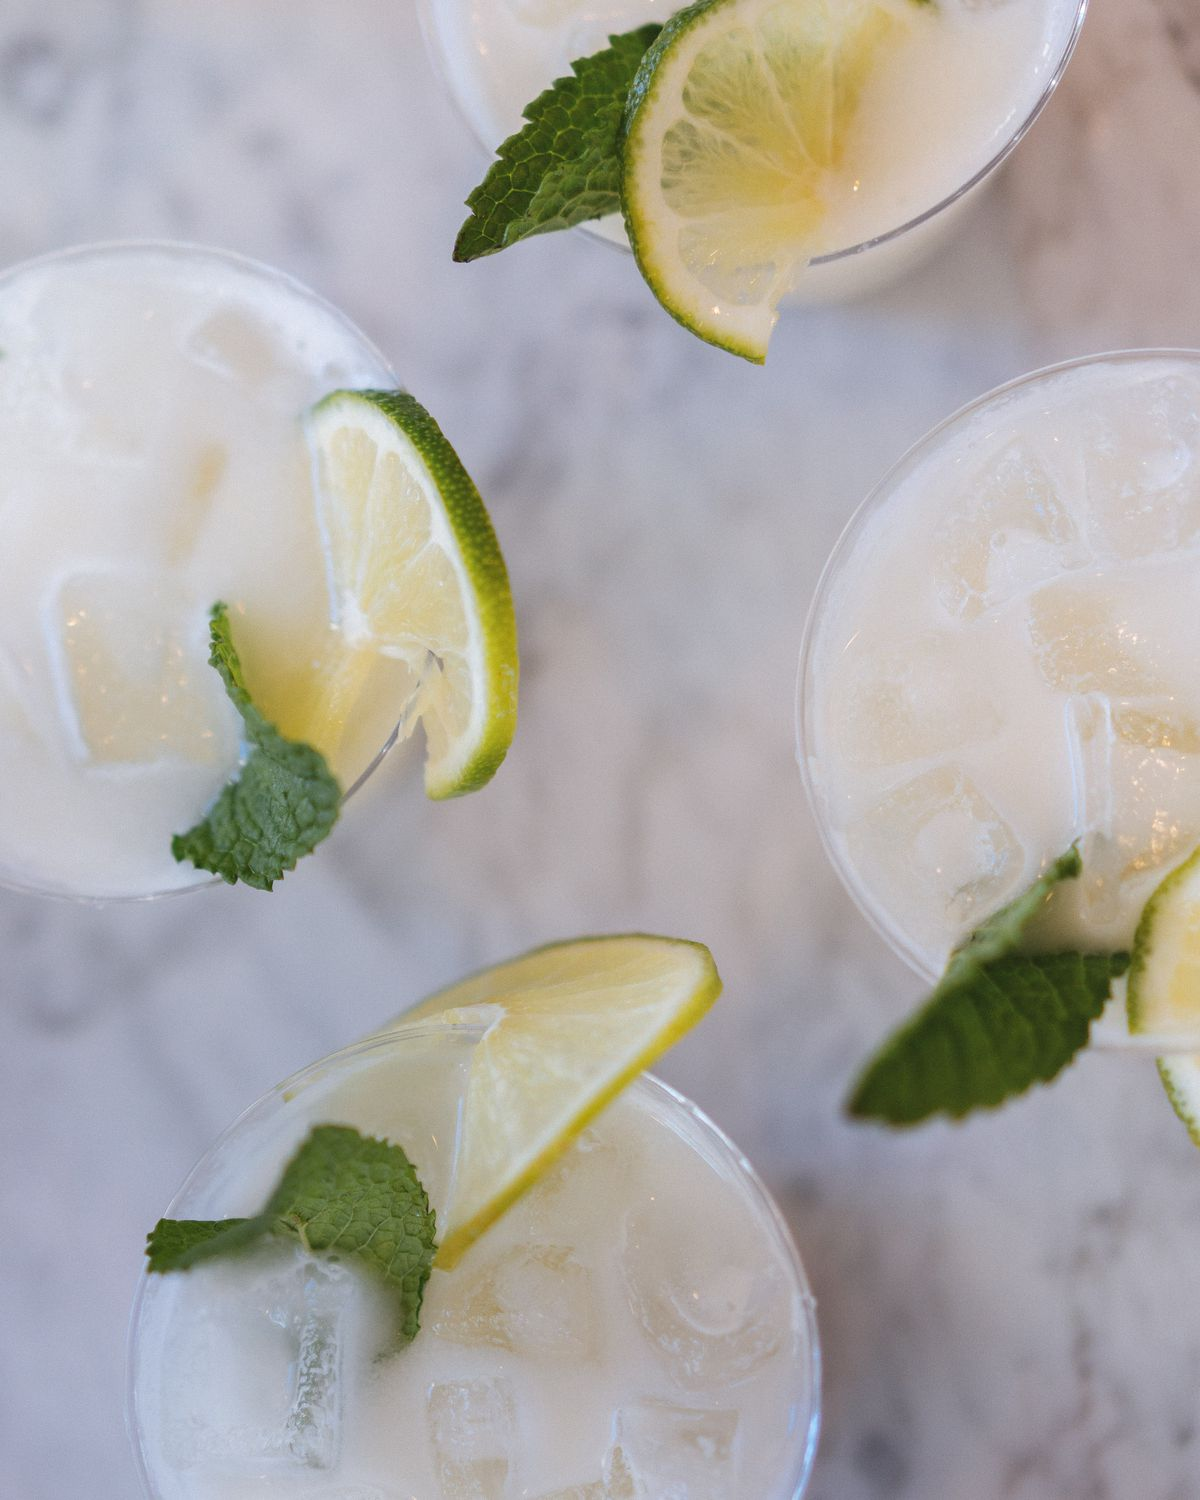 An overhead shot of four glasses of milky lime drink with a lime and mint.